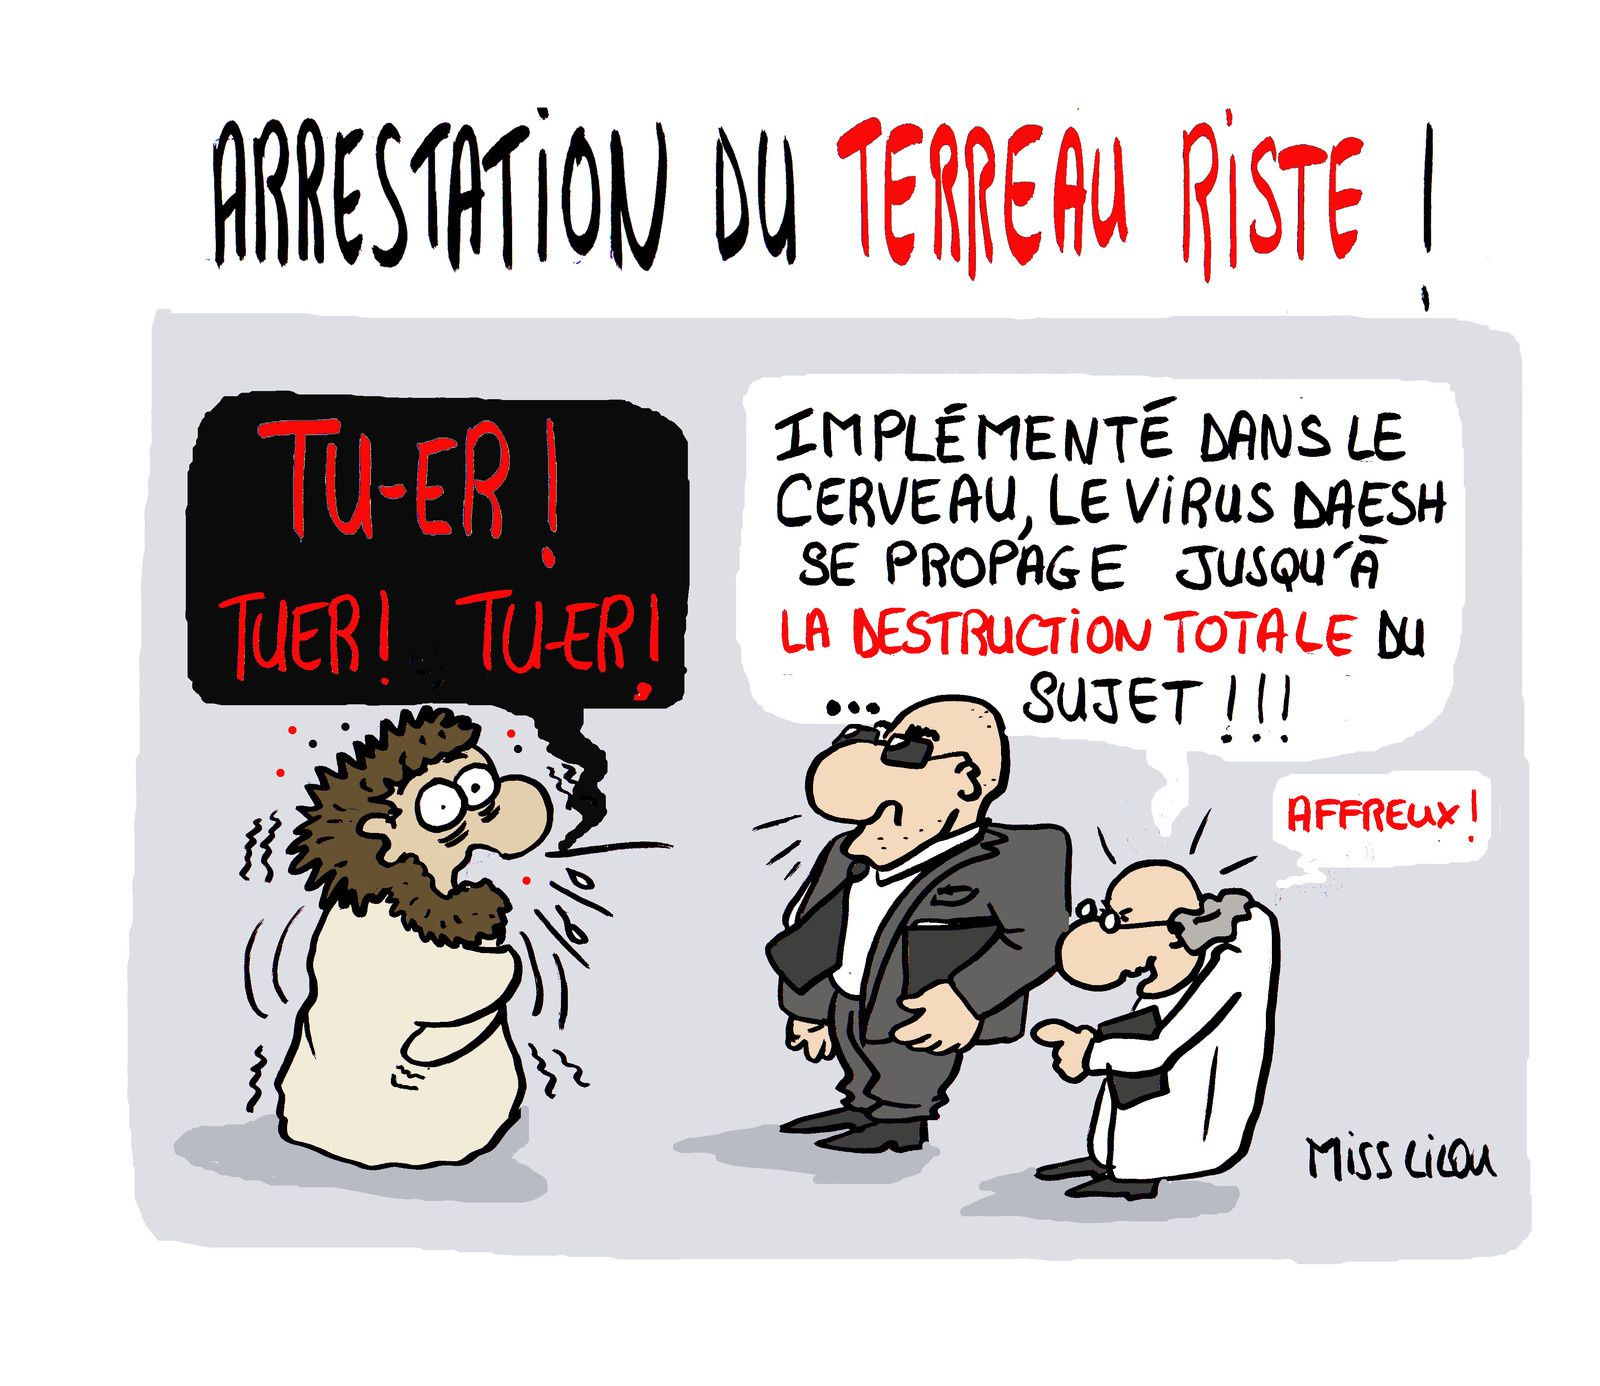 Arrestation du Terreau Riste !